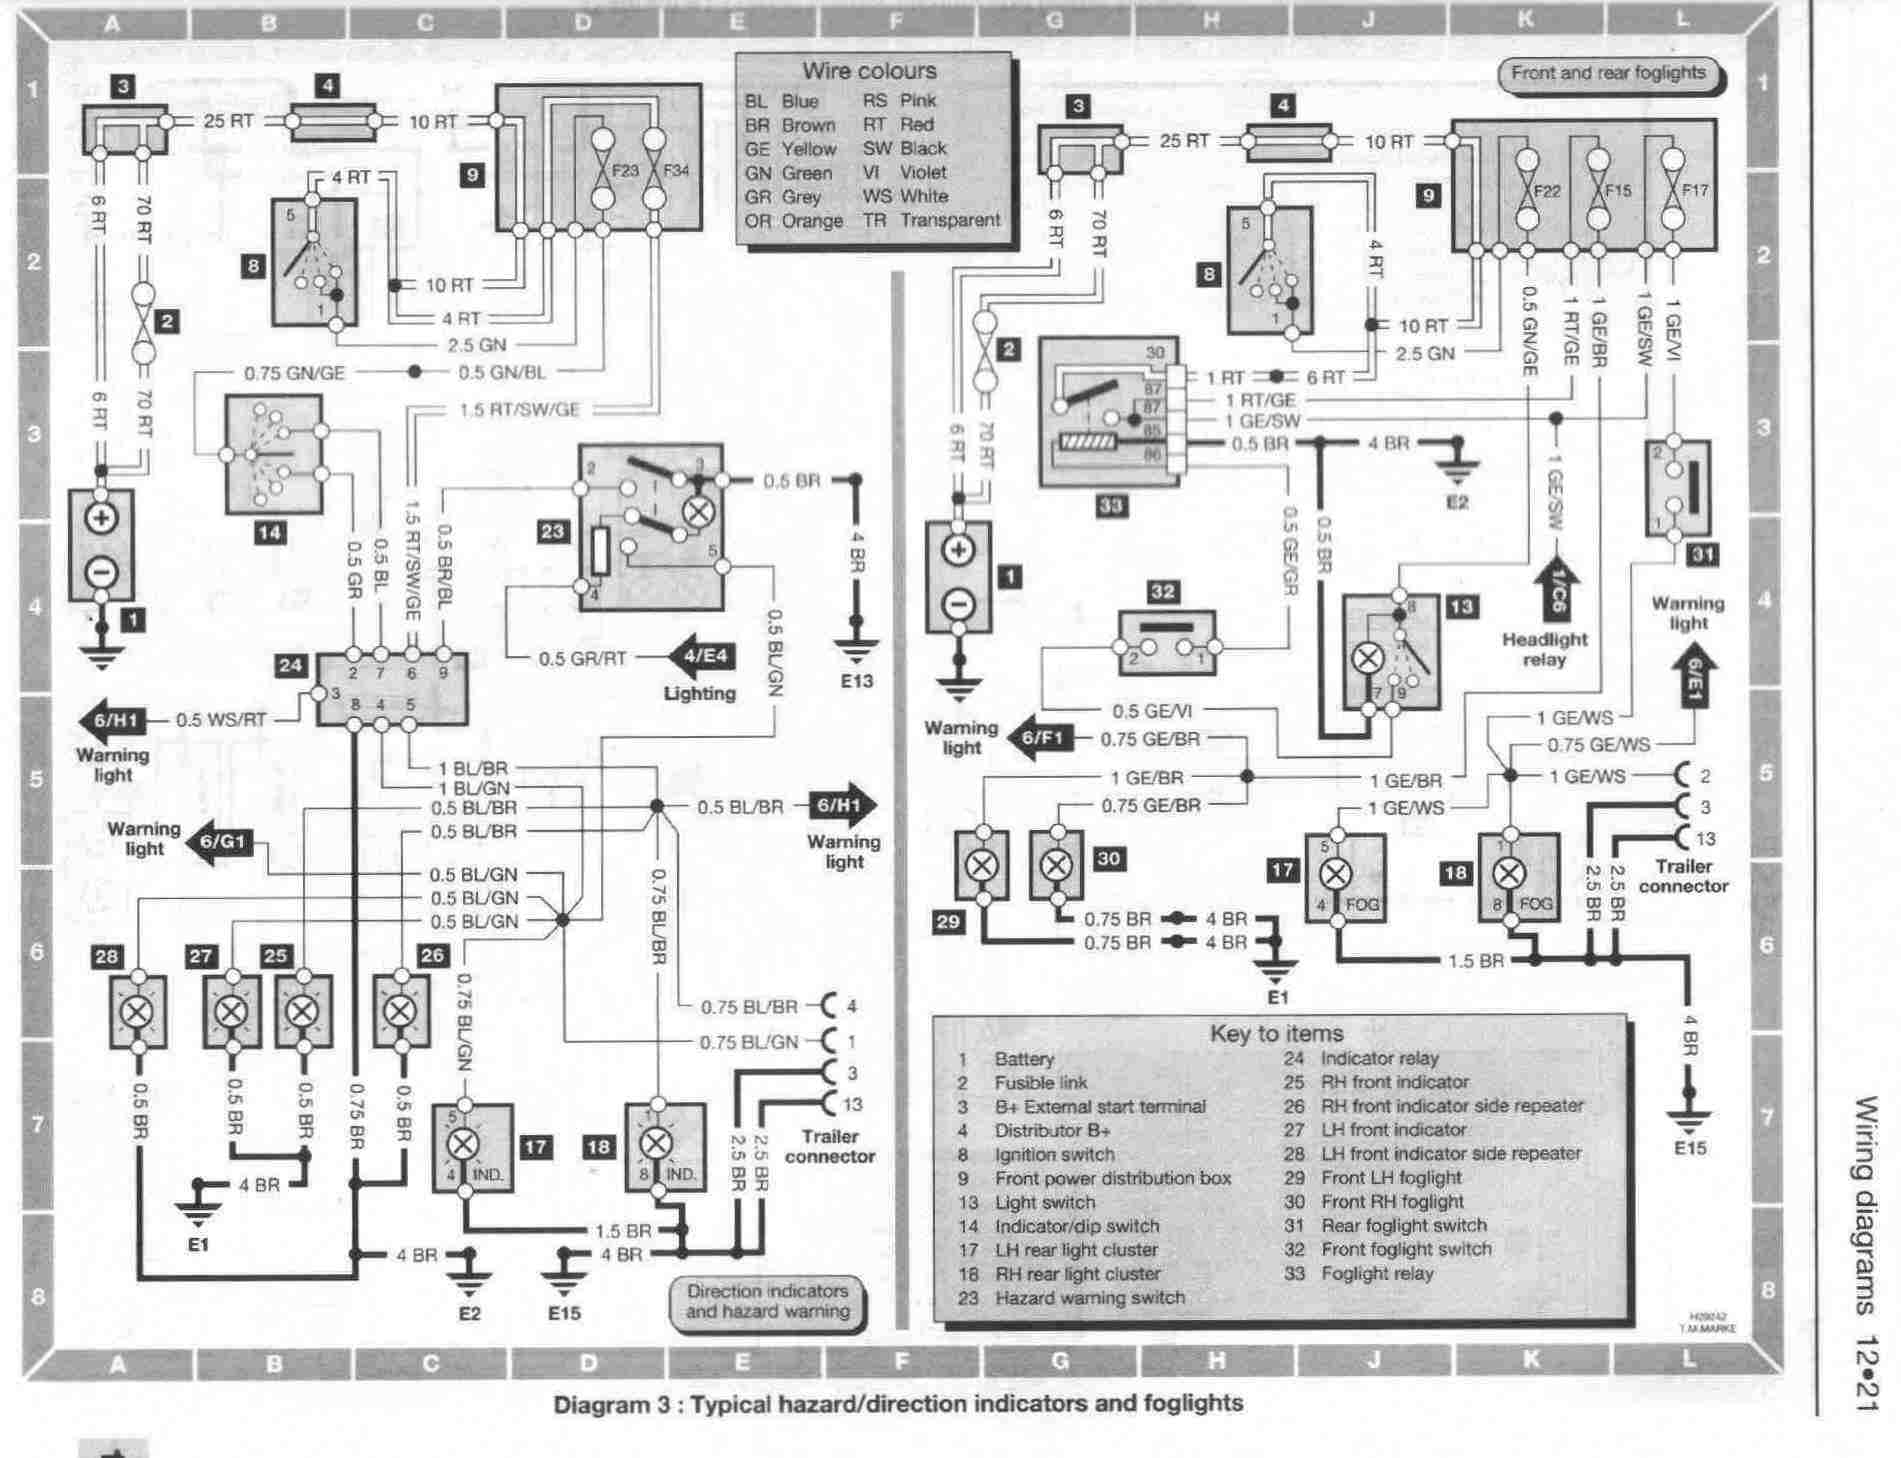 foglamp wiring wiring diagram for international 656 the wiring diagram ih wiring diagrams at gsmx.co